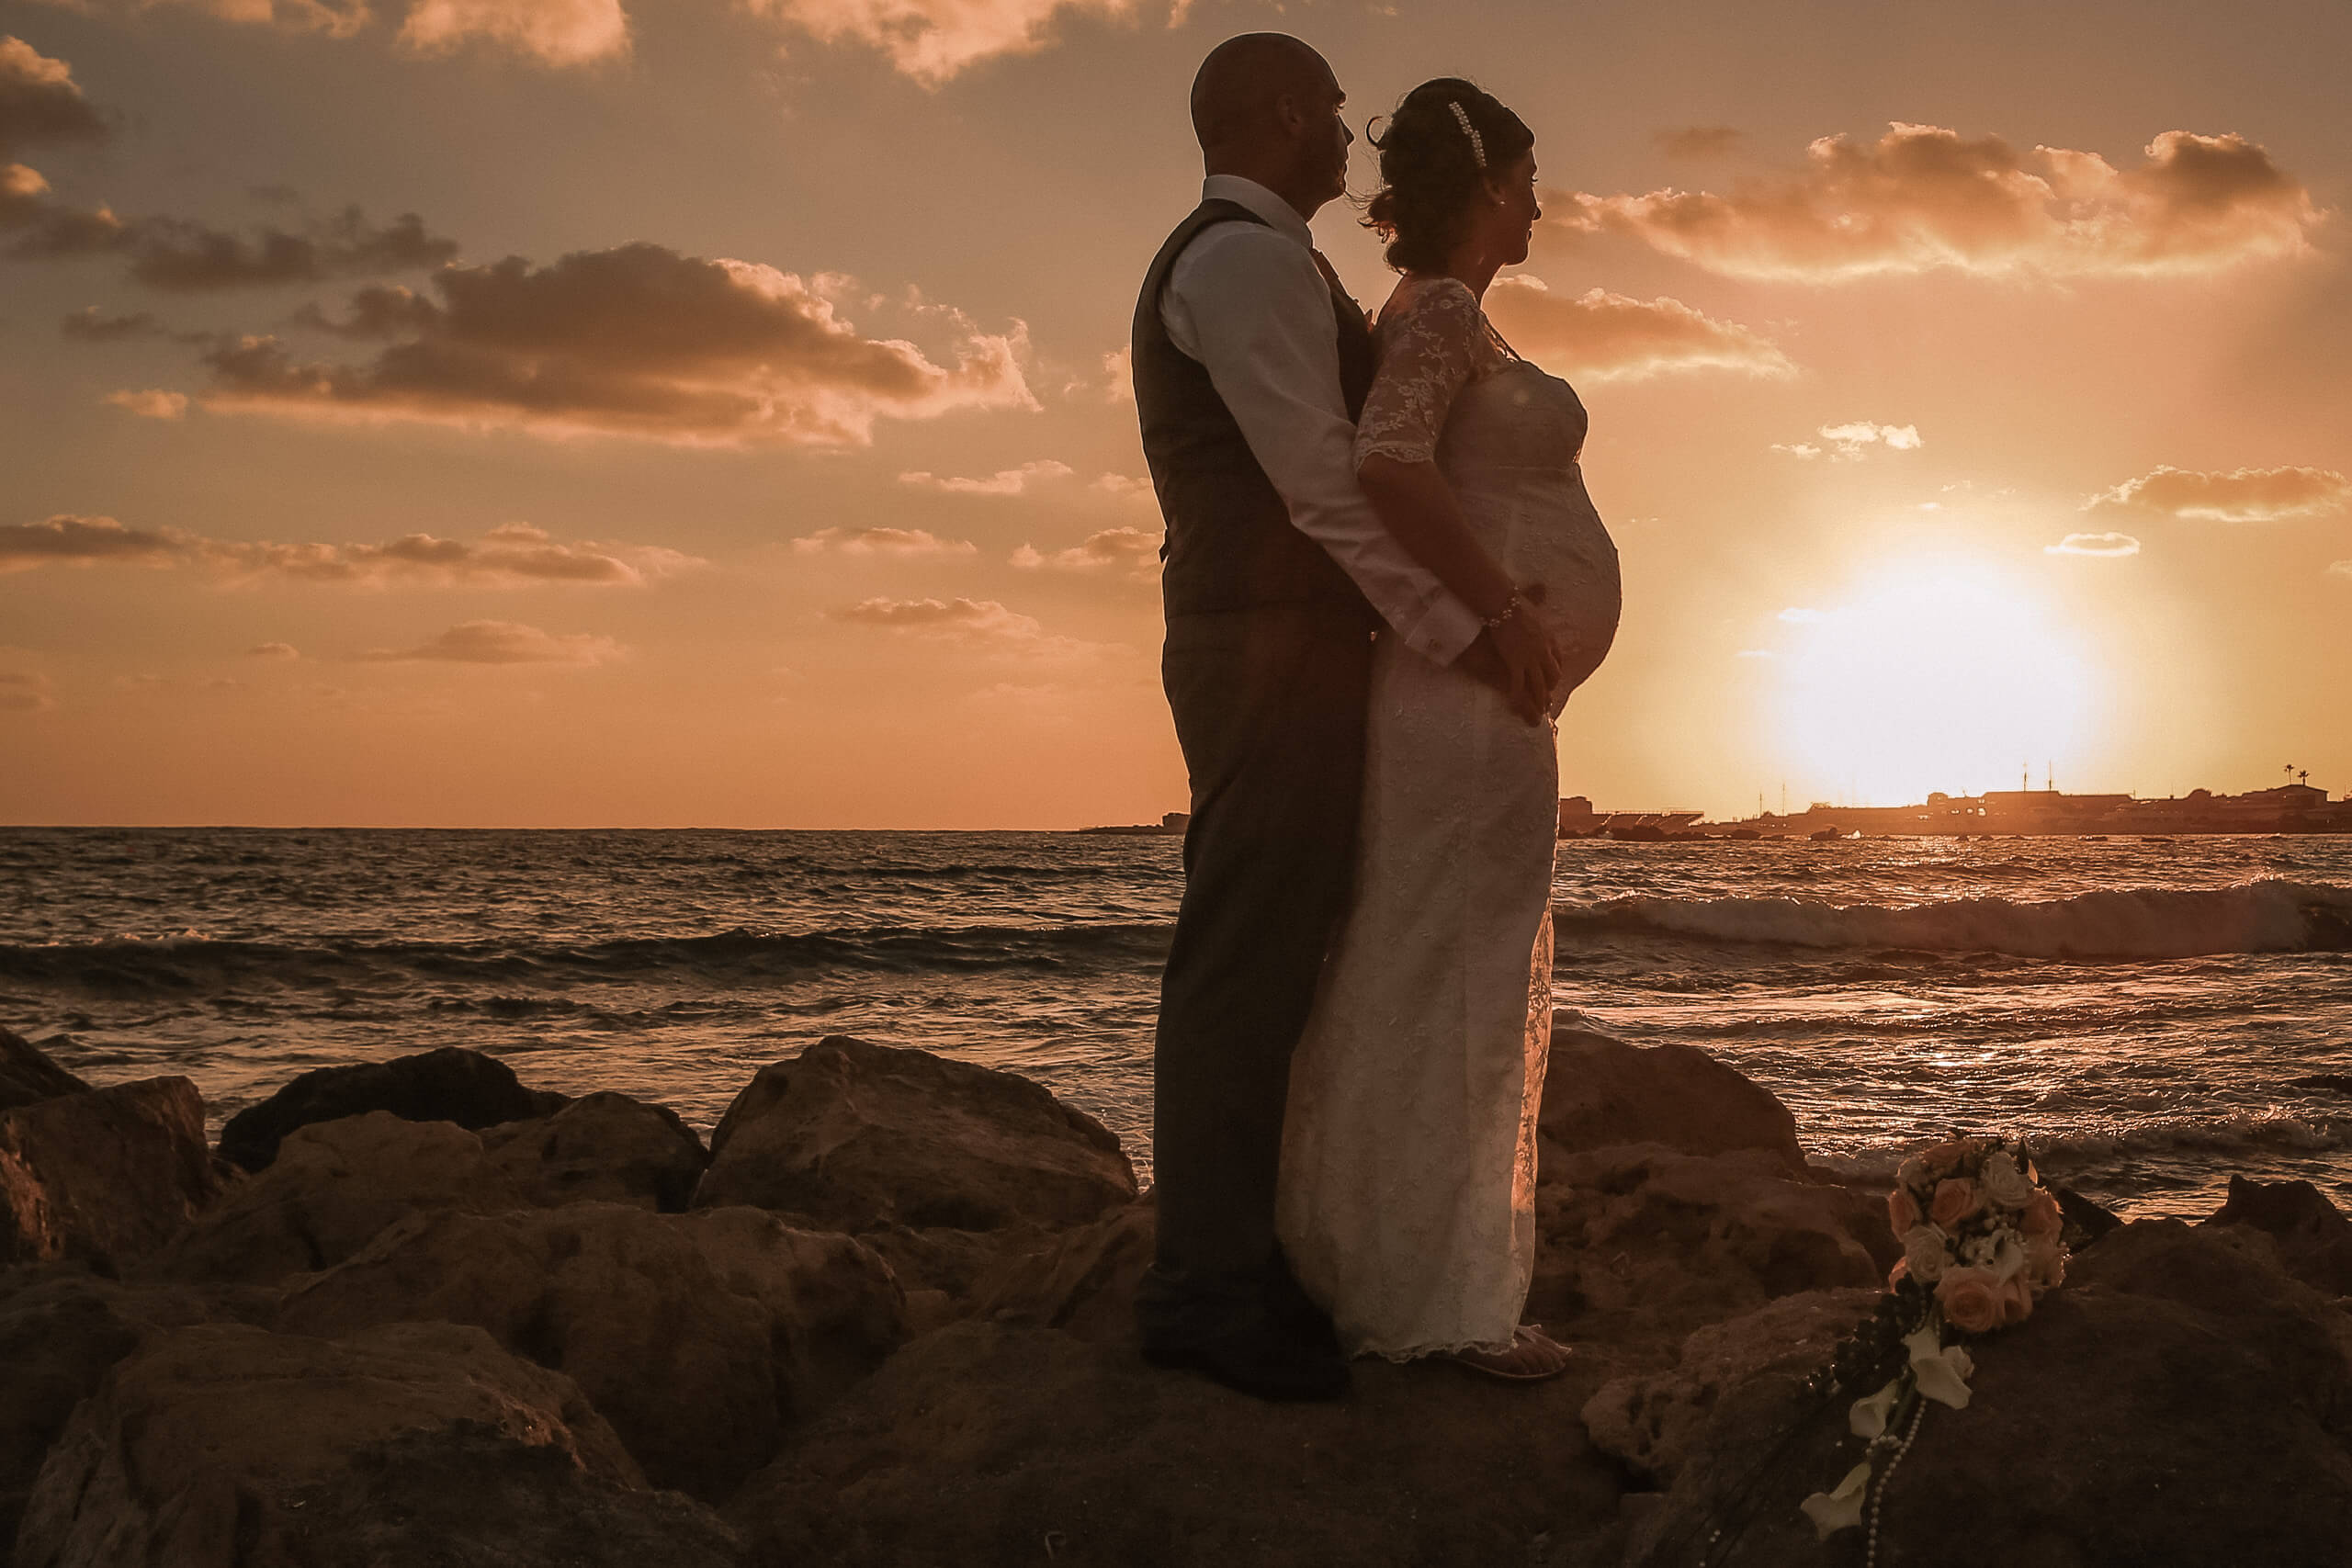 Sunset Pregnant wedding photography portrait Annabelle Hotel